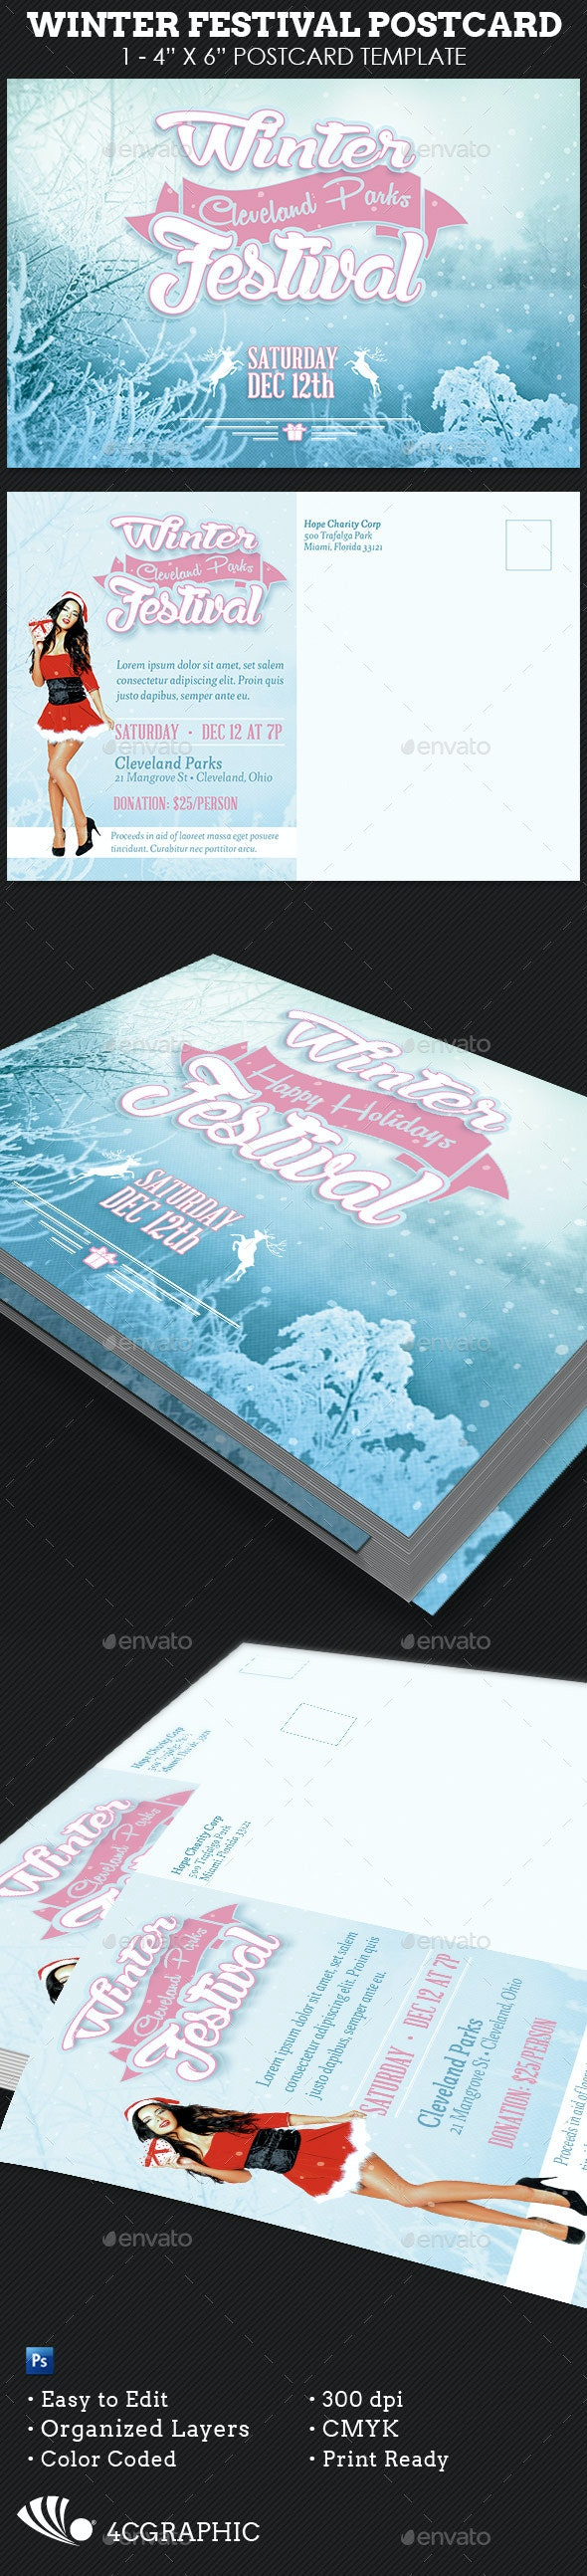 Winter Festival Postcard Template  - Holidays Events